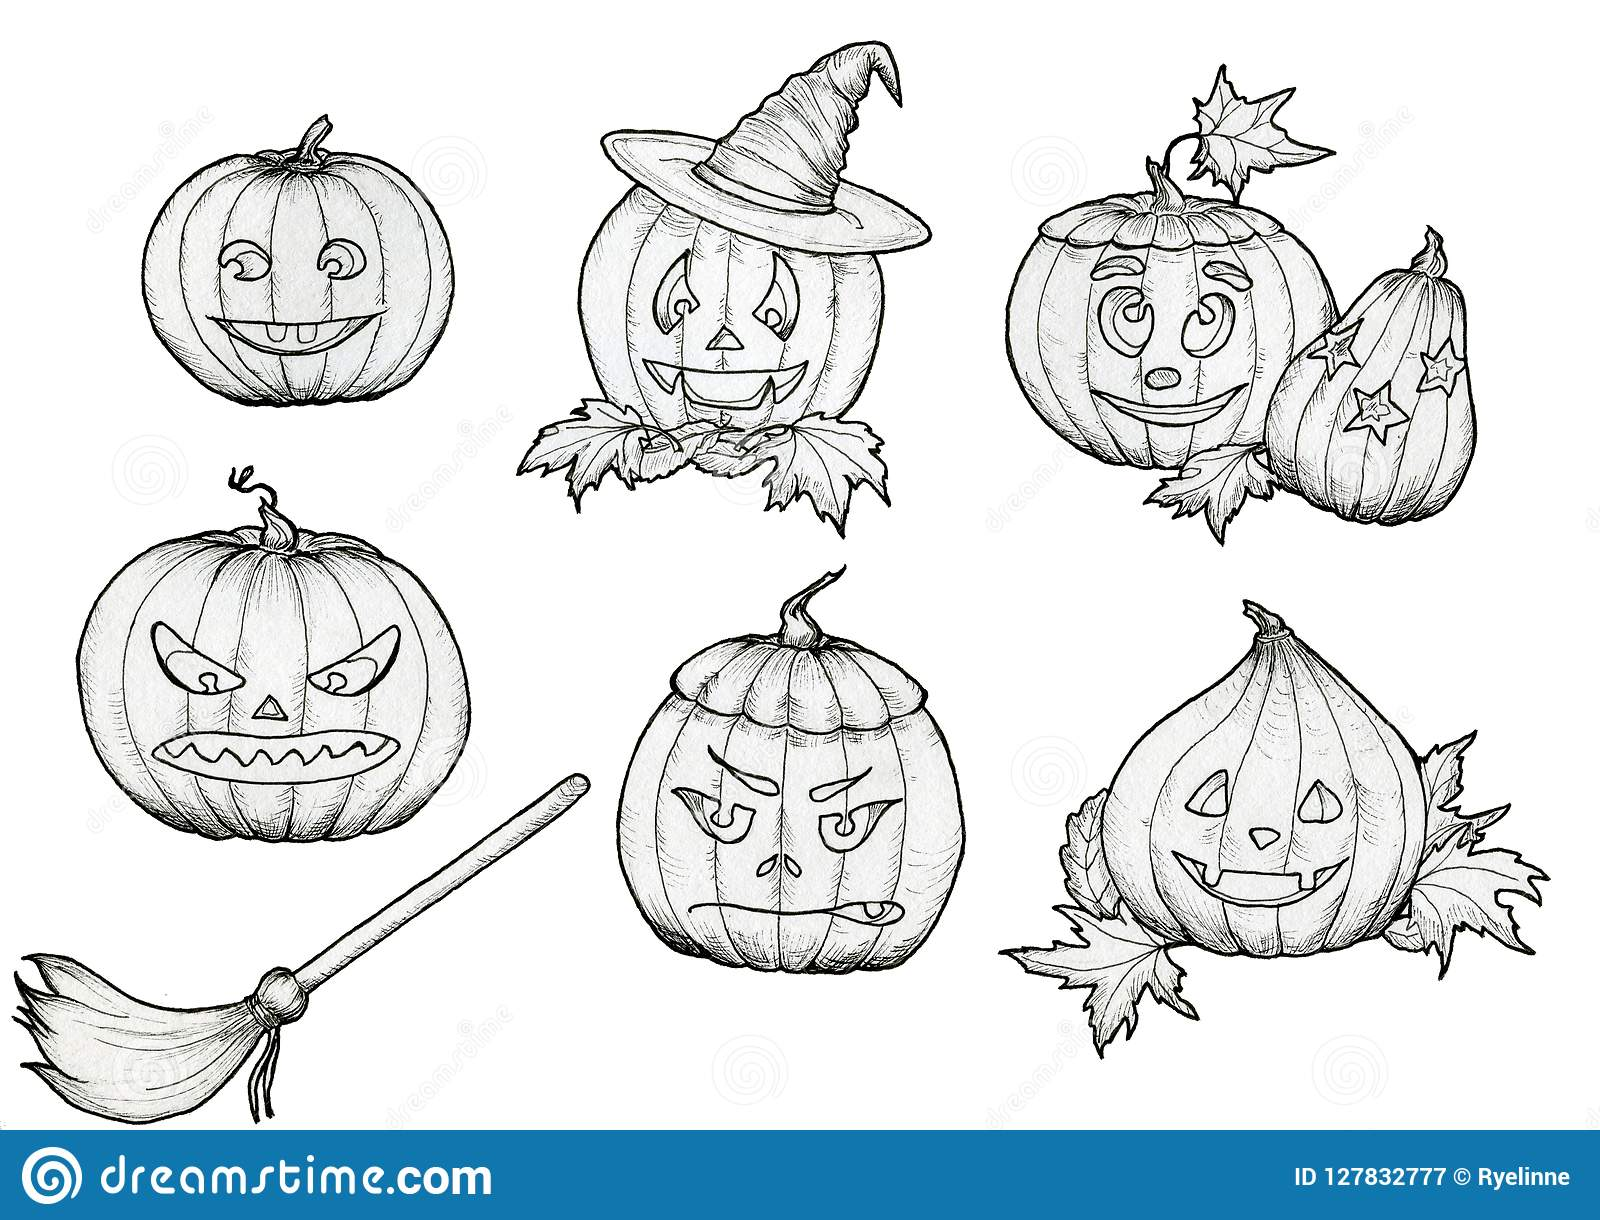 Halloween Pumpkin Drawing Picture.Drawing Halloween Pumpkins With Hat Broom Smiles And Scary Faces